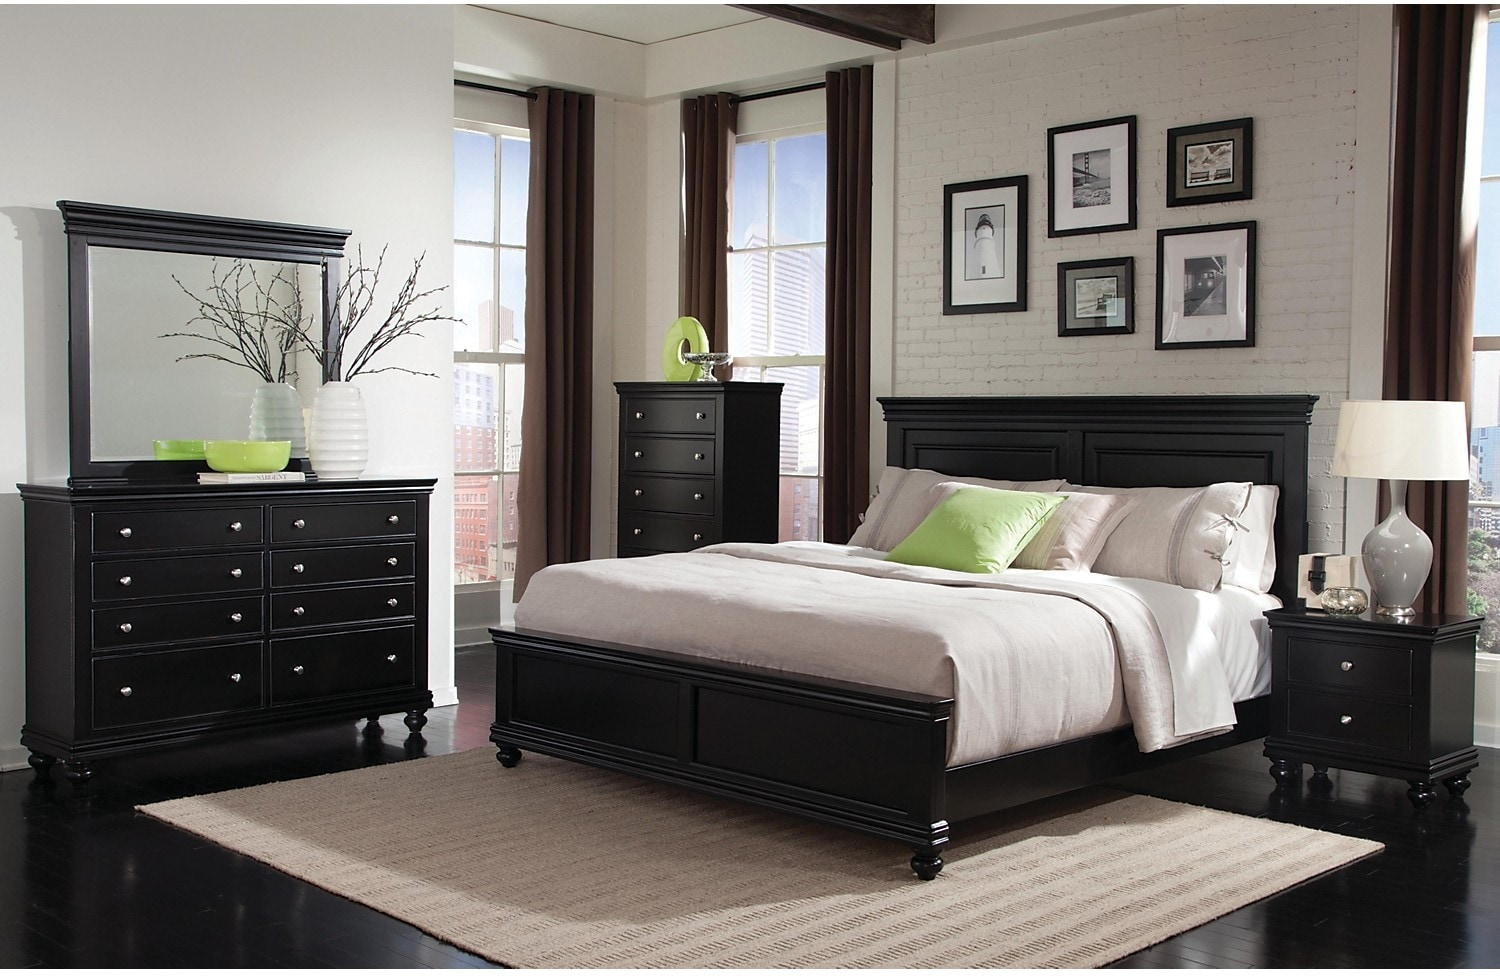 Bridgeport 5 piece queen bedroom set black the brick for 3 bedroom set